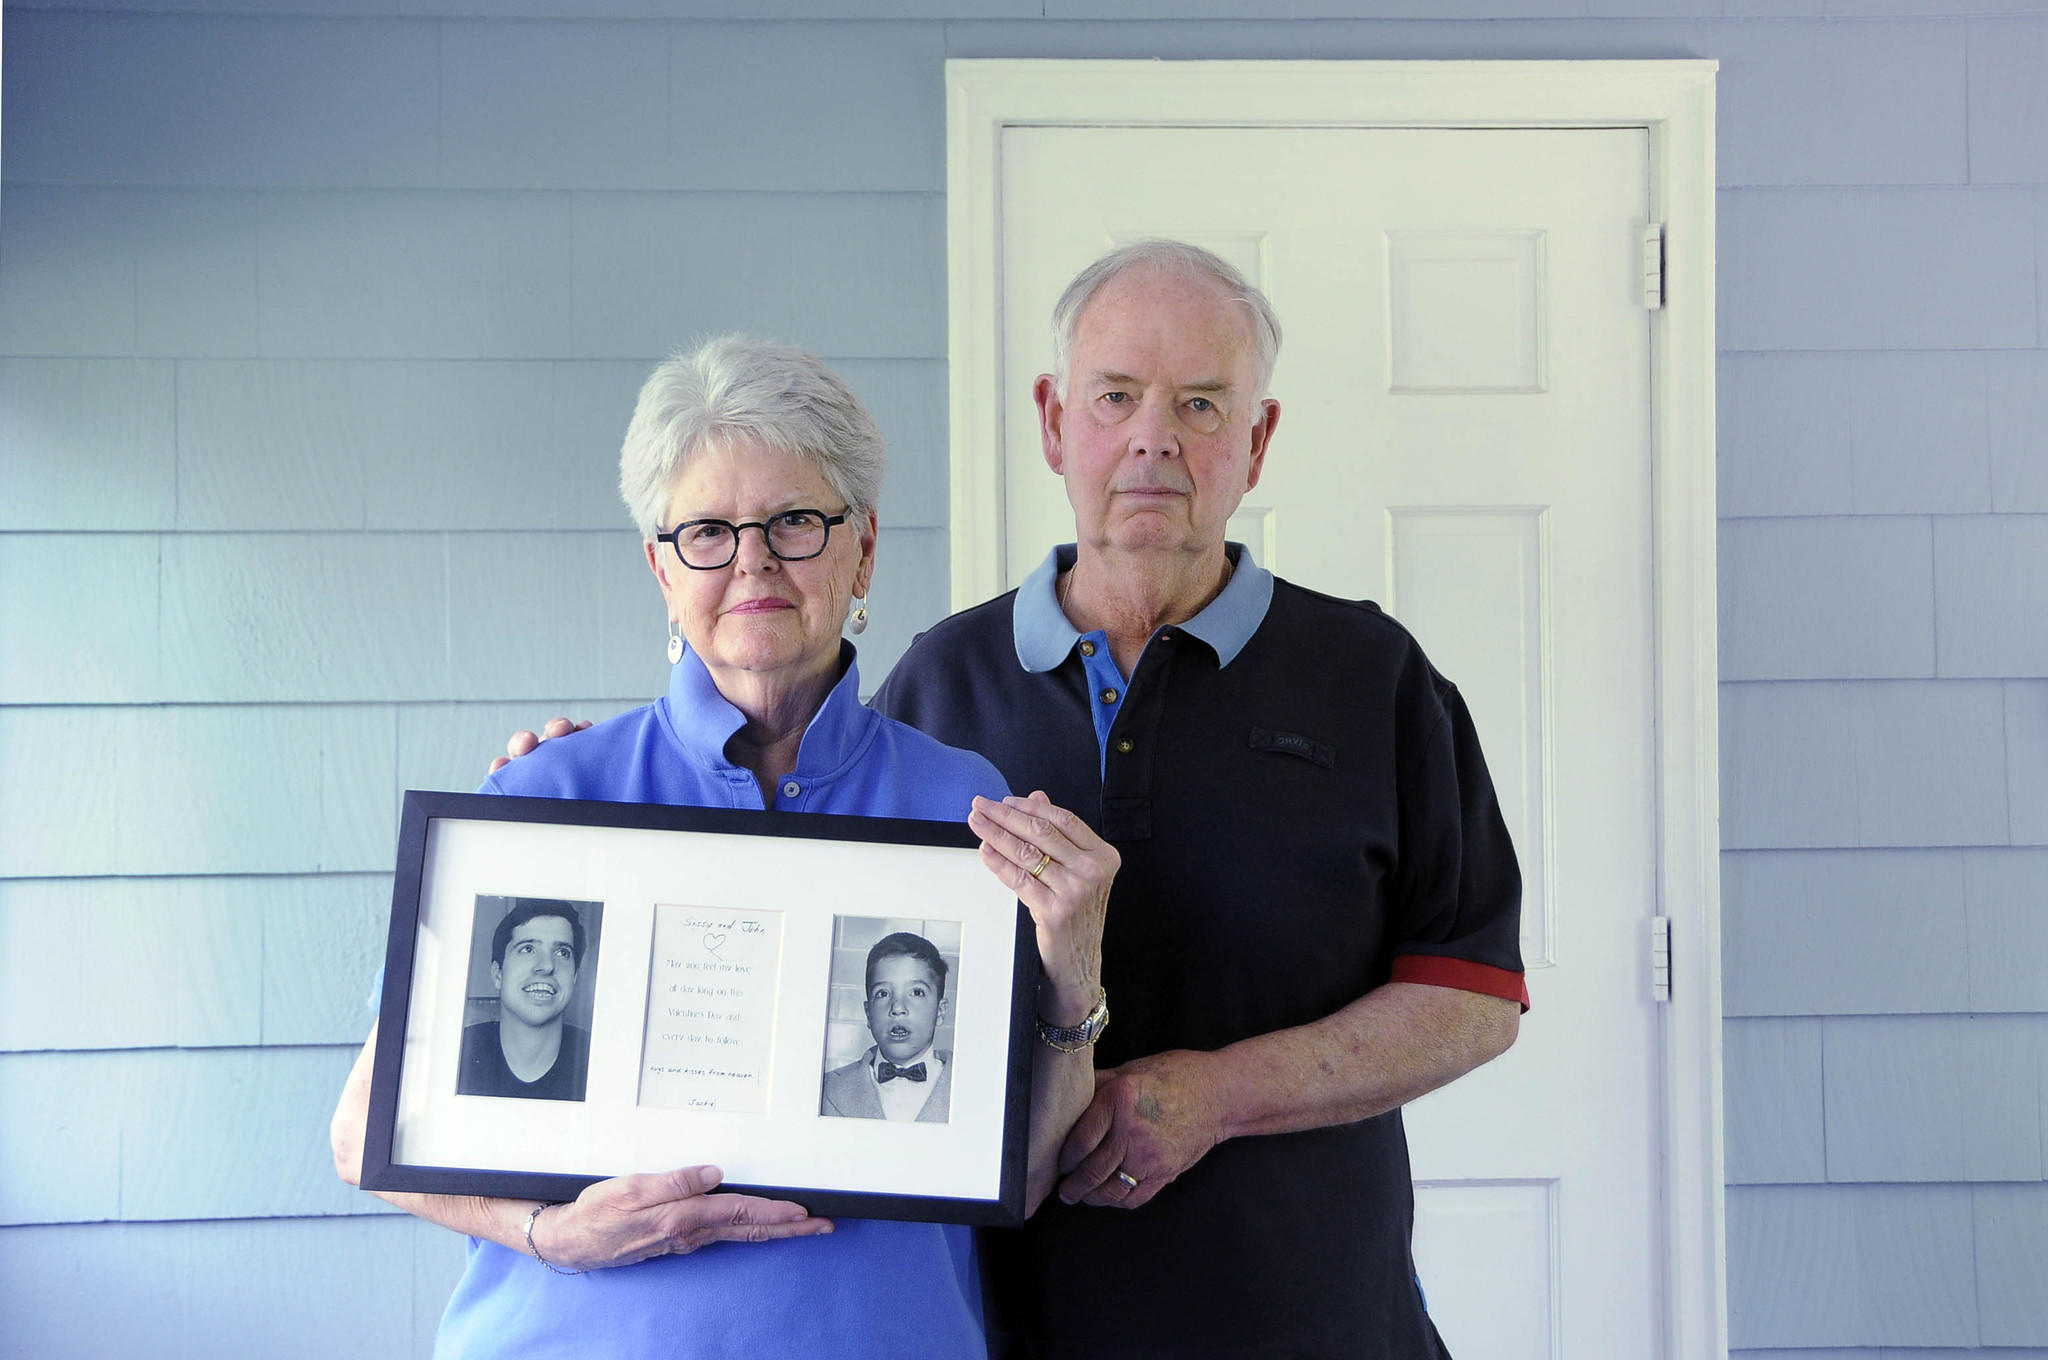 Beverly and John Matakaetis, of Newington, have been advocating for an investigation into the November 2012 death of Beverly's brother, Jack Kiley, Jr., a developmentally disabled patient at Southbury Training School, a death they believe was preventable. The frame holds two photos of Jack, one as a little boy and one taken several years later.